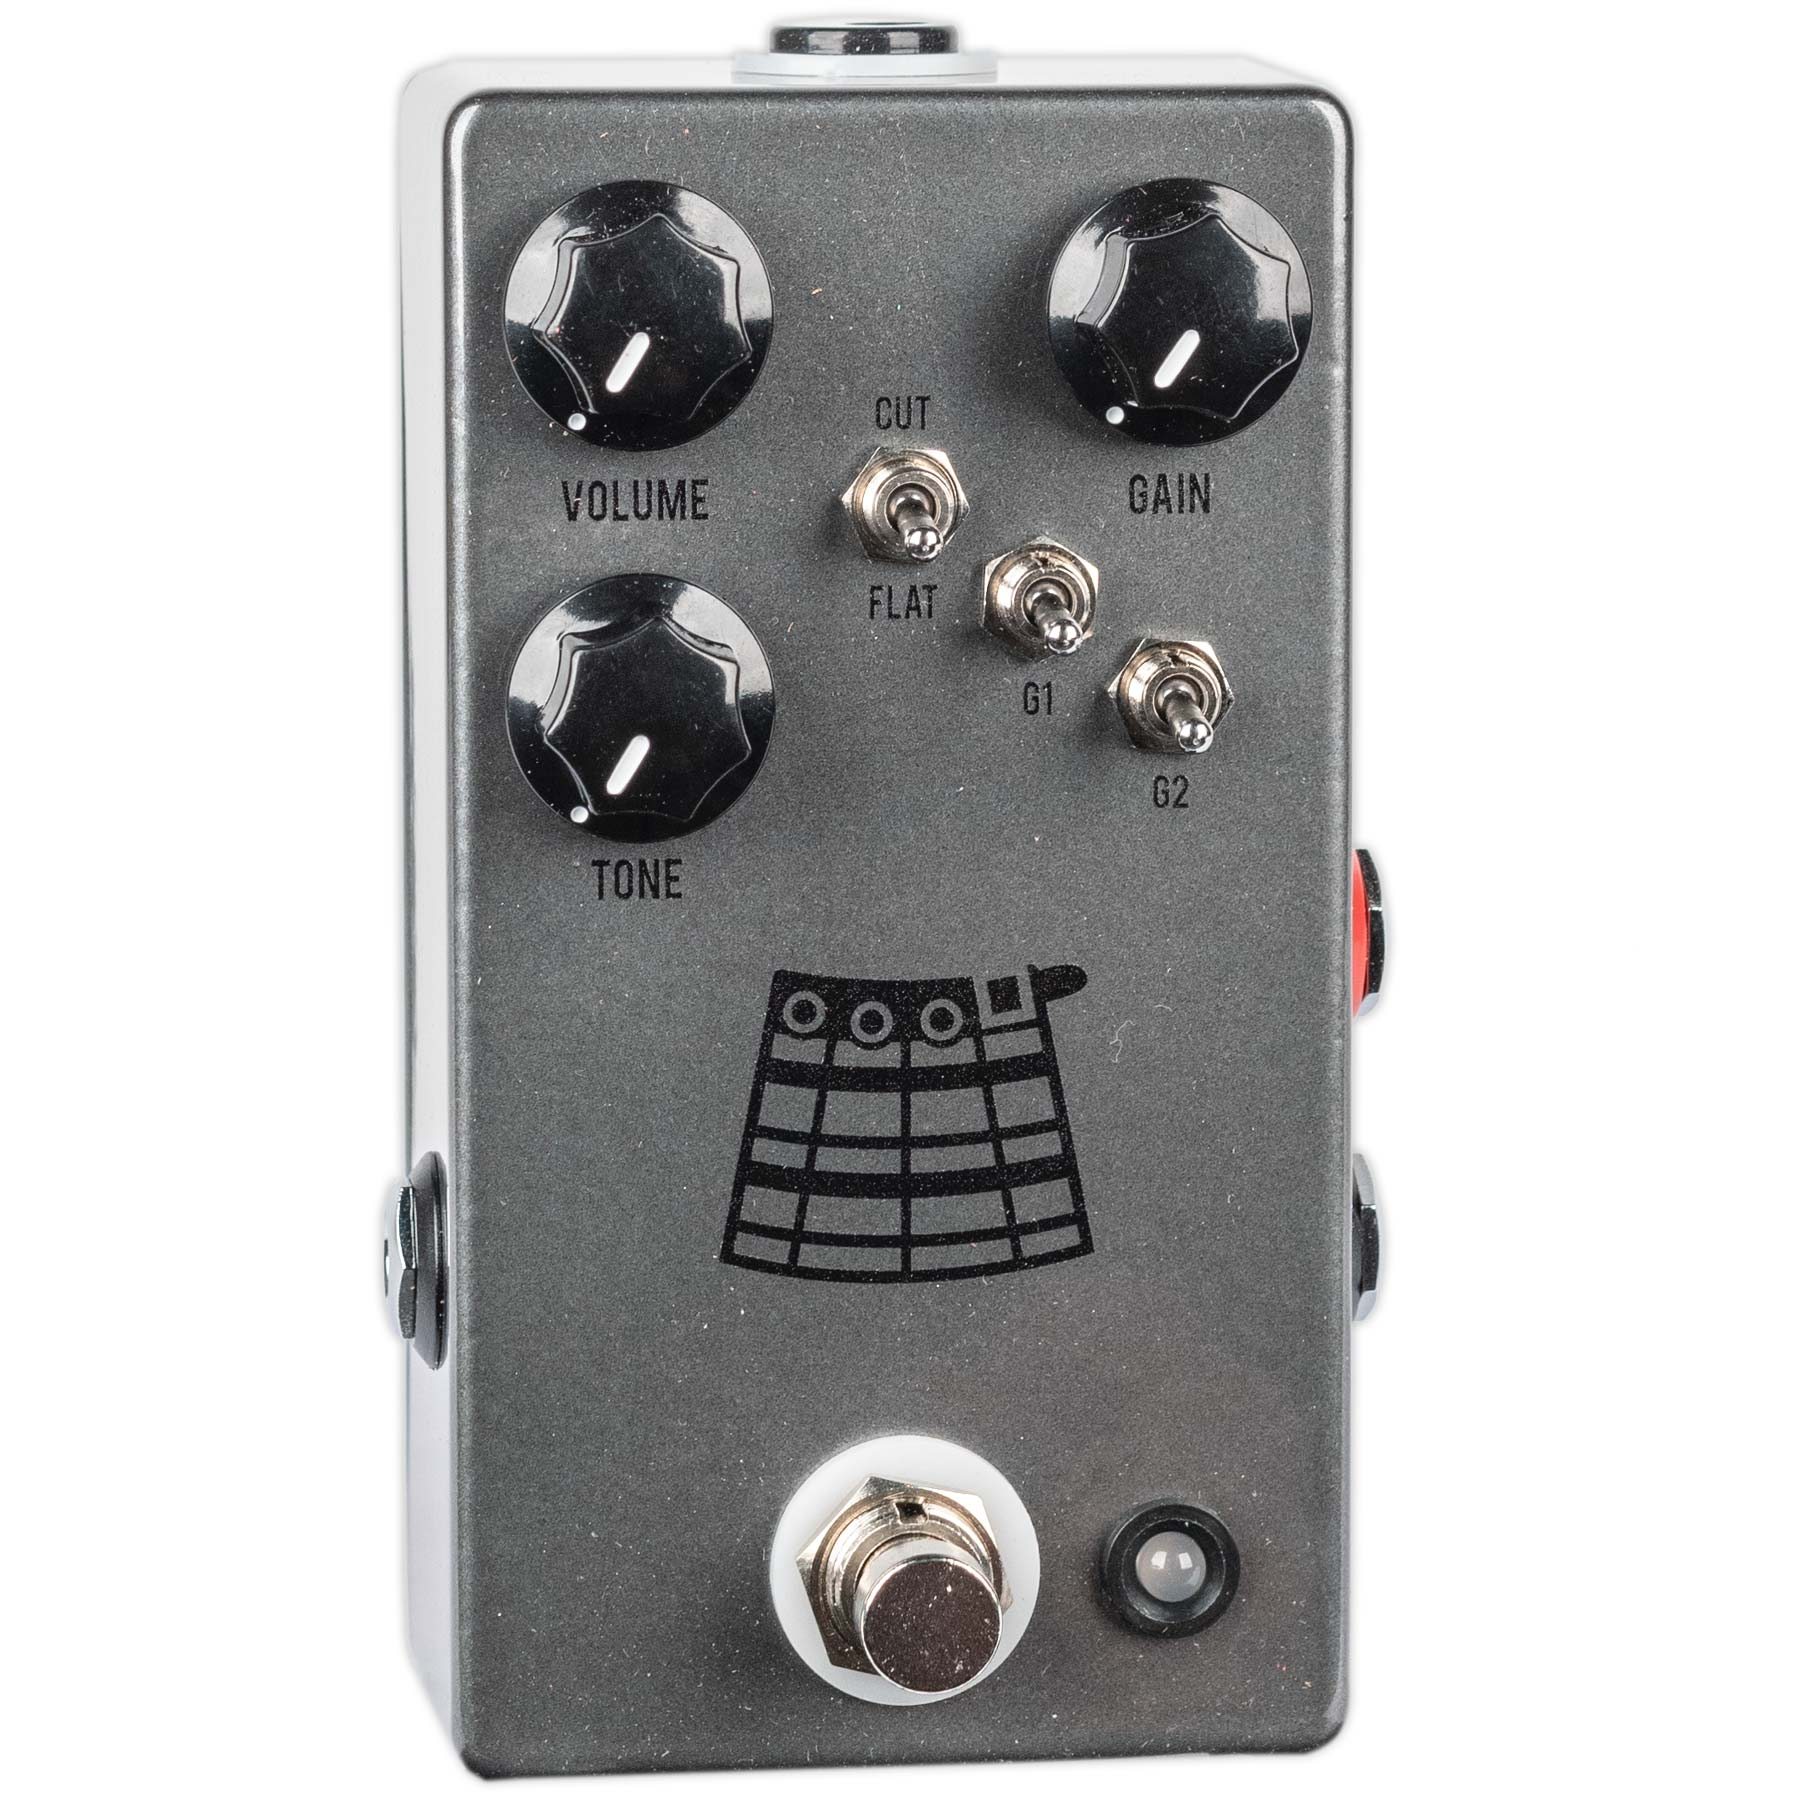 JHS THE KILT V2 StuG SIGNATURE OVERDRIVE/DISTORTION/FUZZ